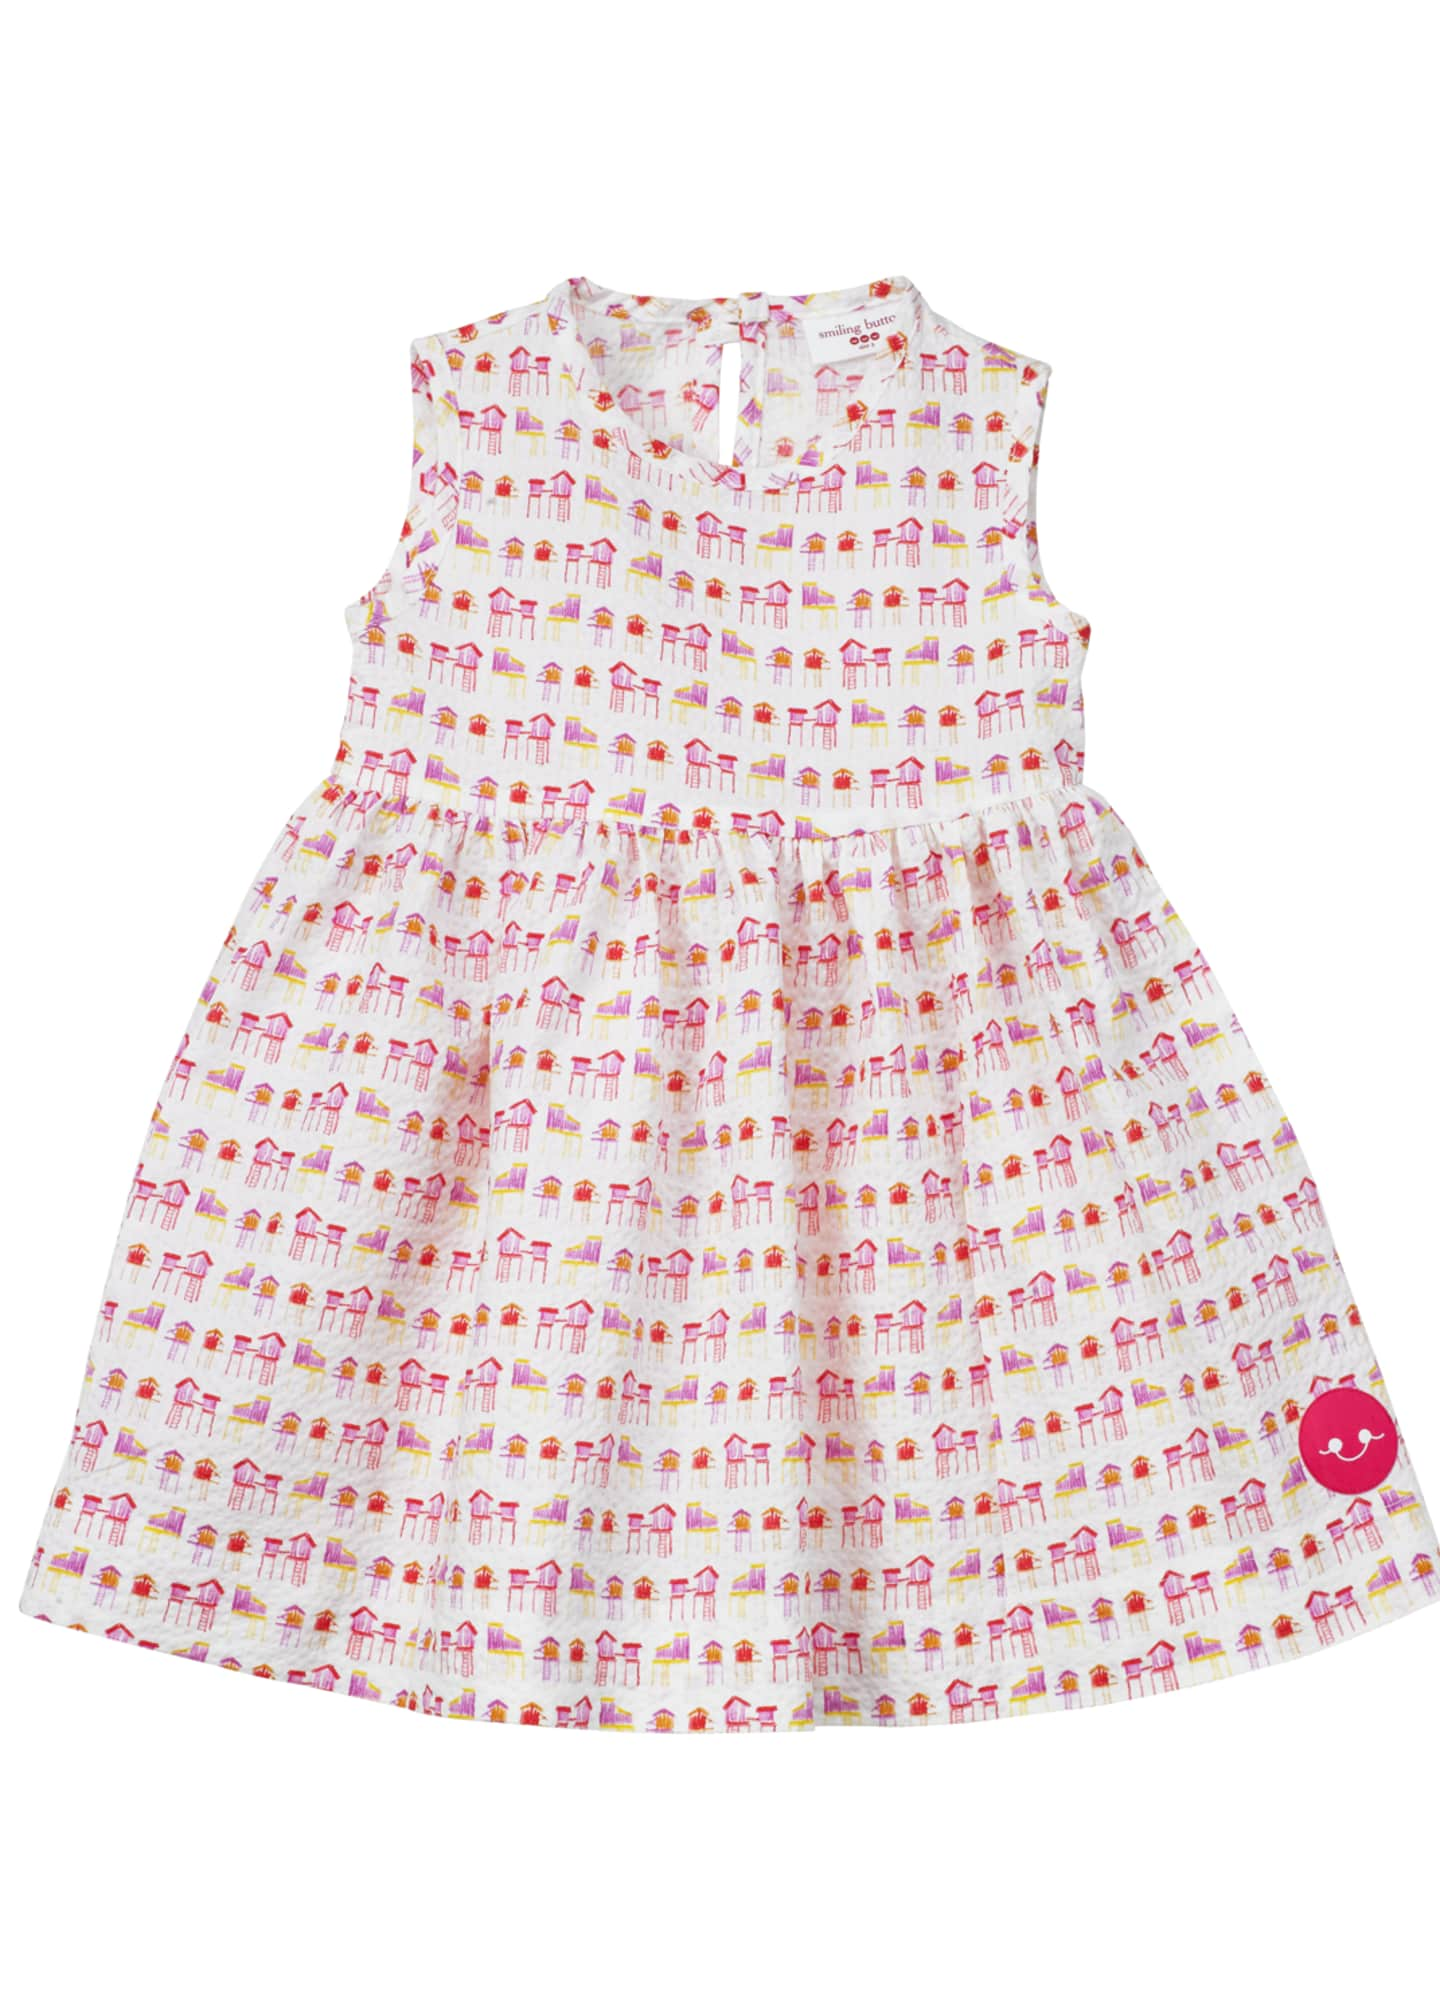 Smiling Button Summer House Sunset Print Seersucker Dress,